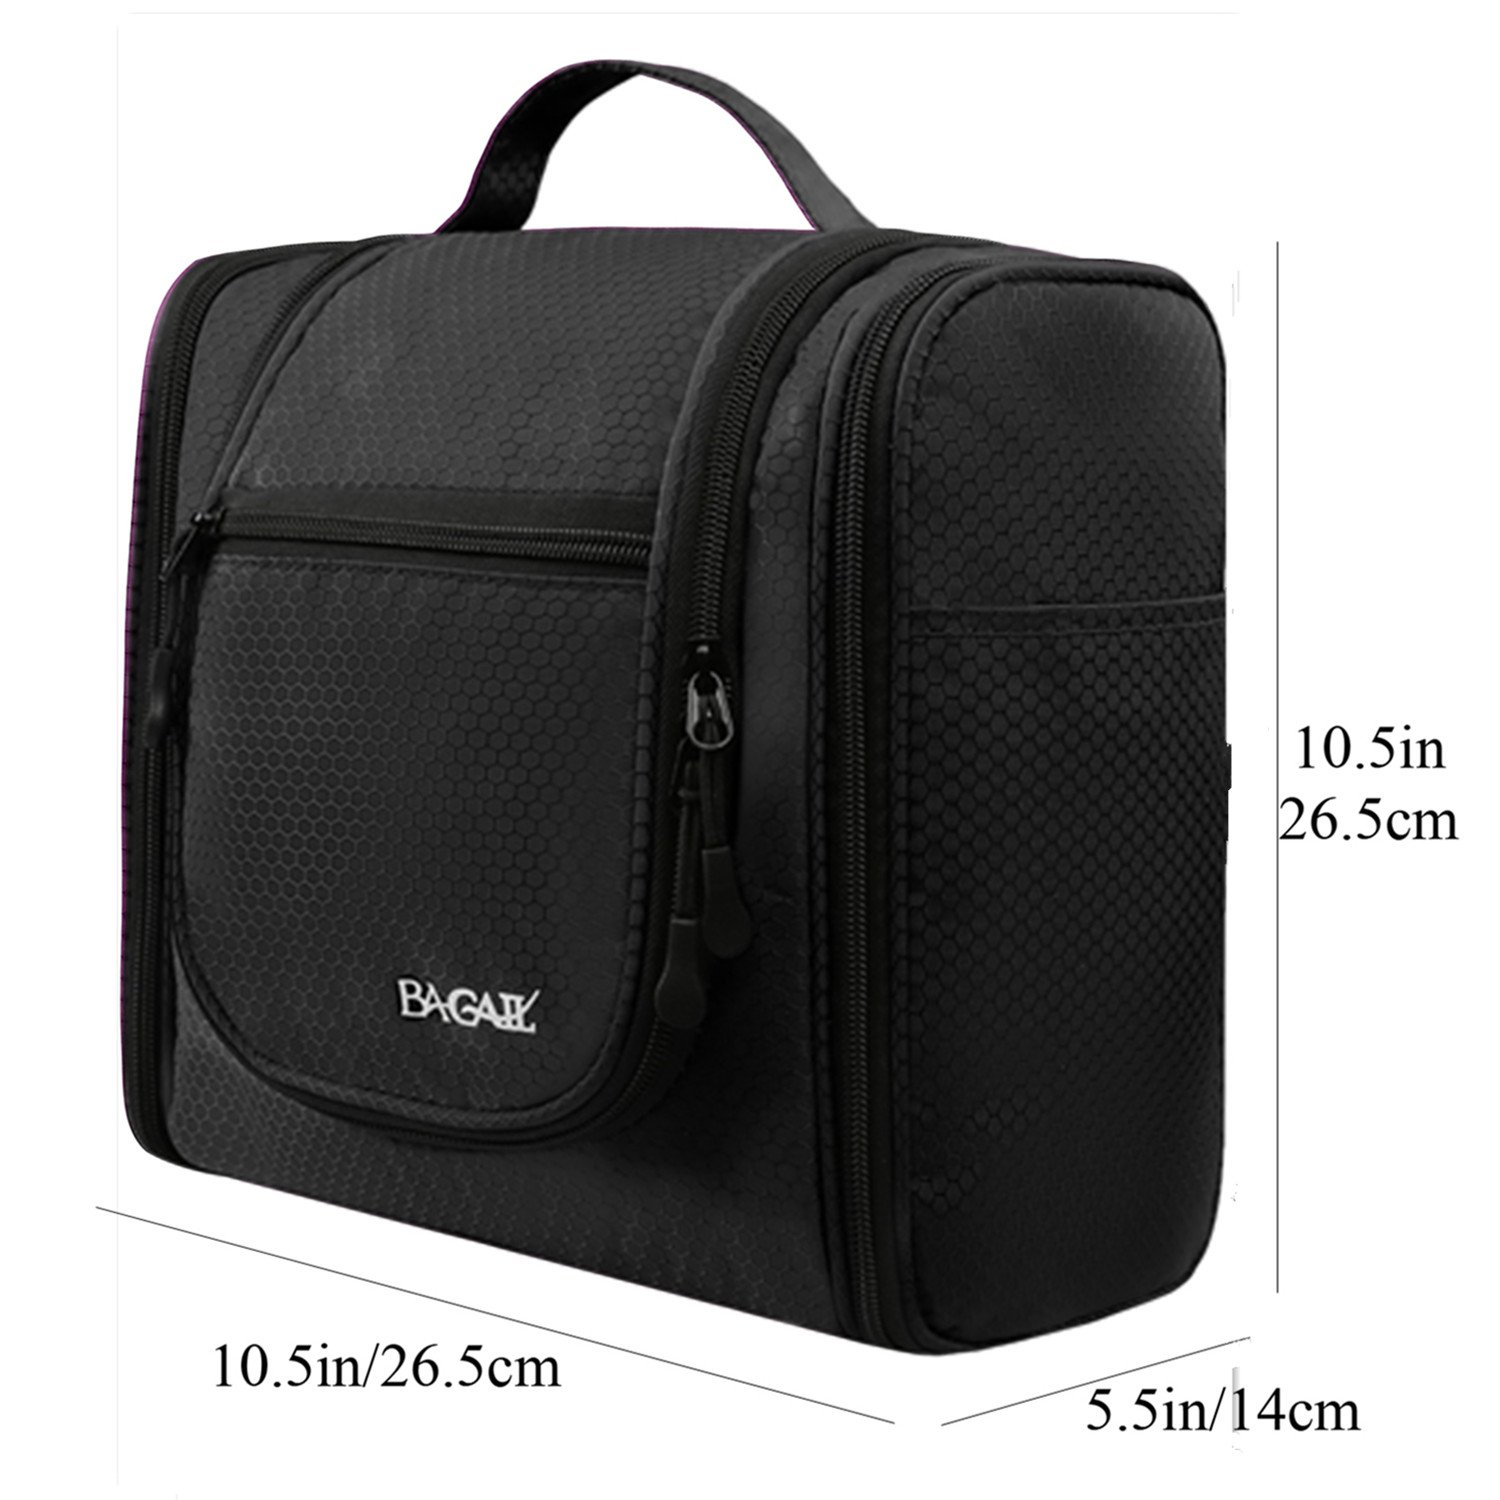 7097b788335 Bagail Men & Women Toiletry Bag for Makeup, Cosmetic, Shaving, Travel  Accessories, Personal Items -Hotel, Car, Home, Bathroom, Airplane Hanging  Toiletries ...